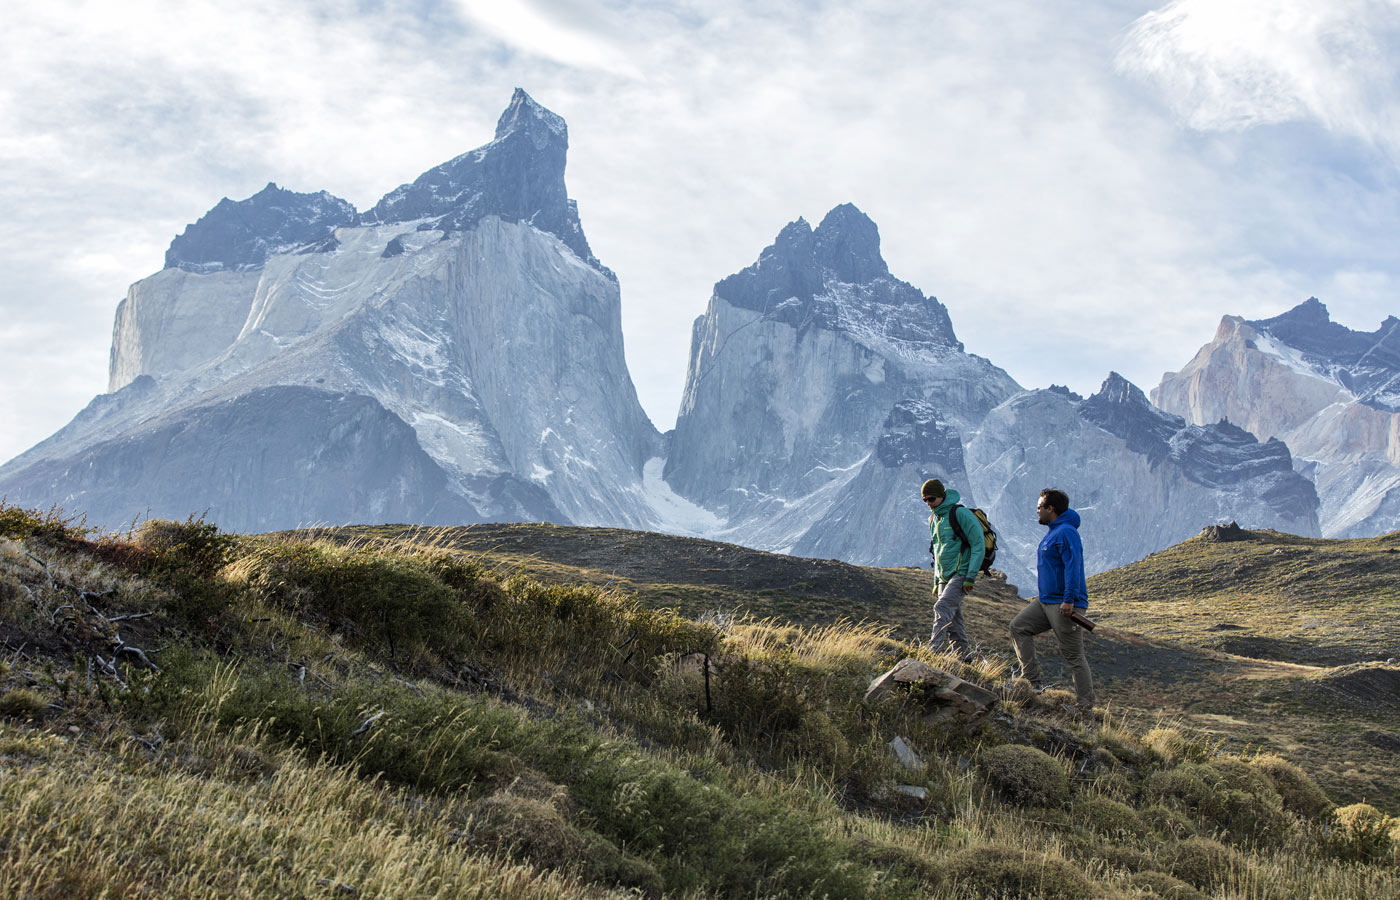 Trekking in Torres del Paine National Park, Chile